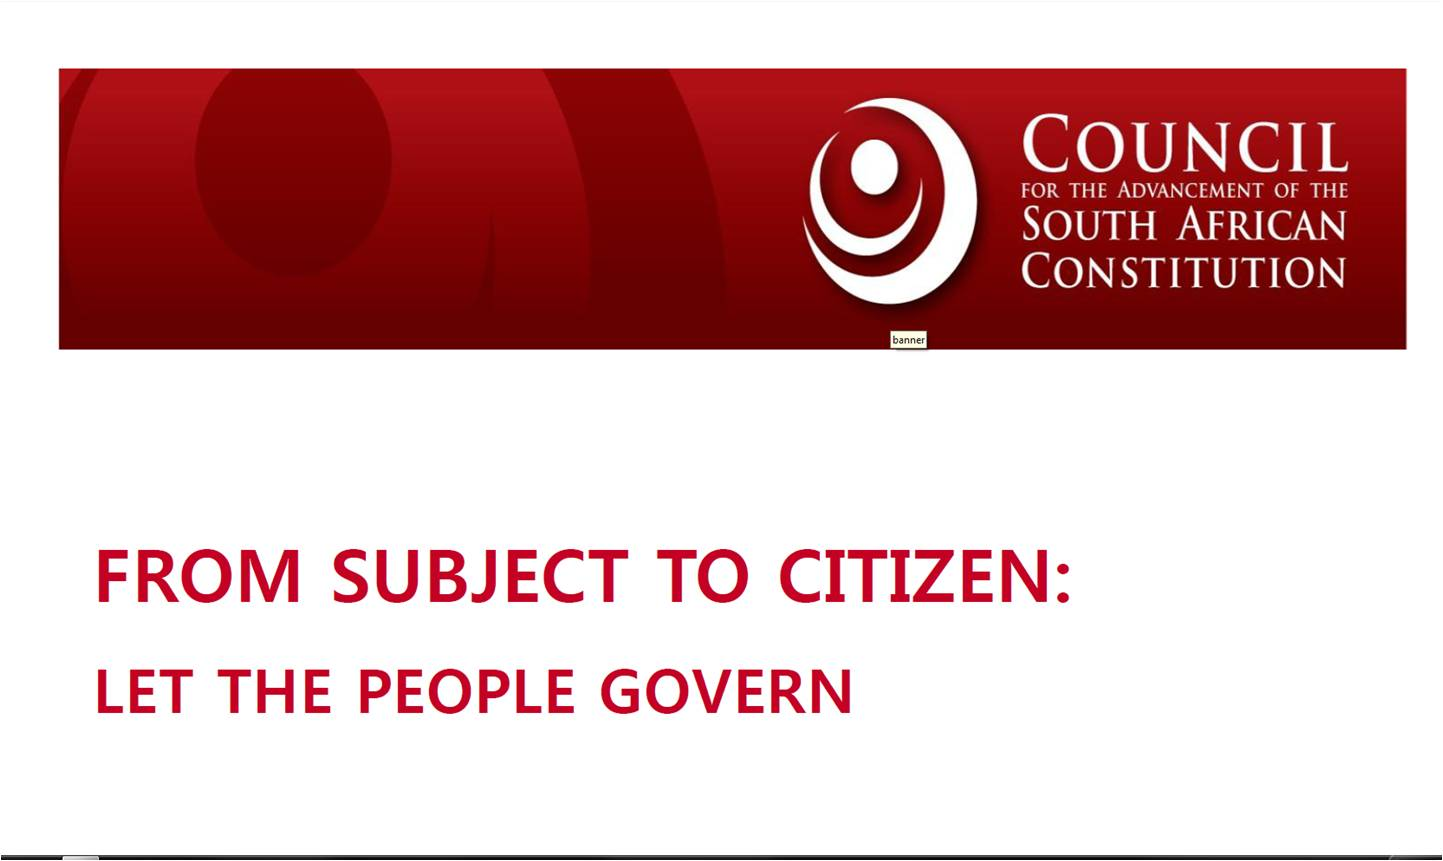 From subject to citizen: A review of the National Development Plan - Vision 2030